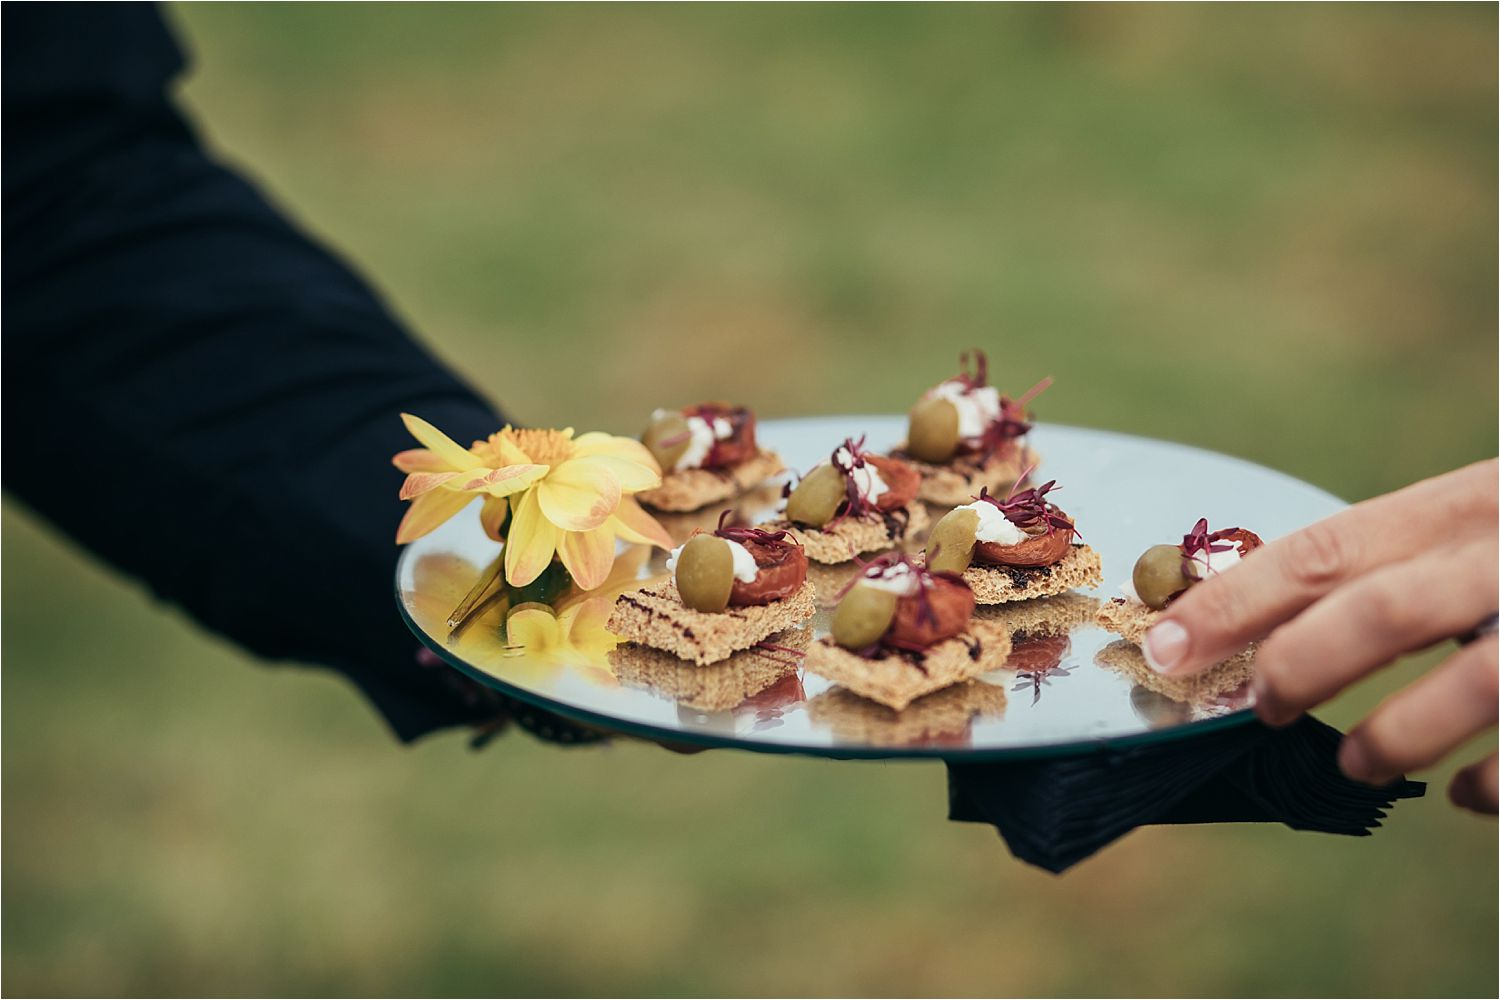 Canapes at Manchester tipi wedding, catering by With a Twist Caterers